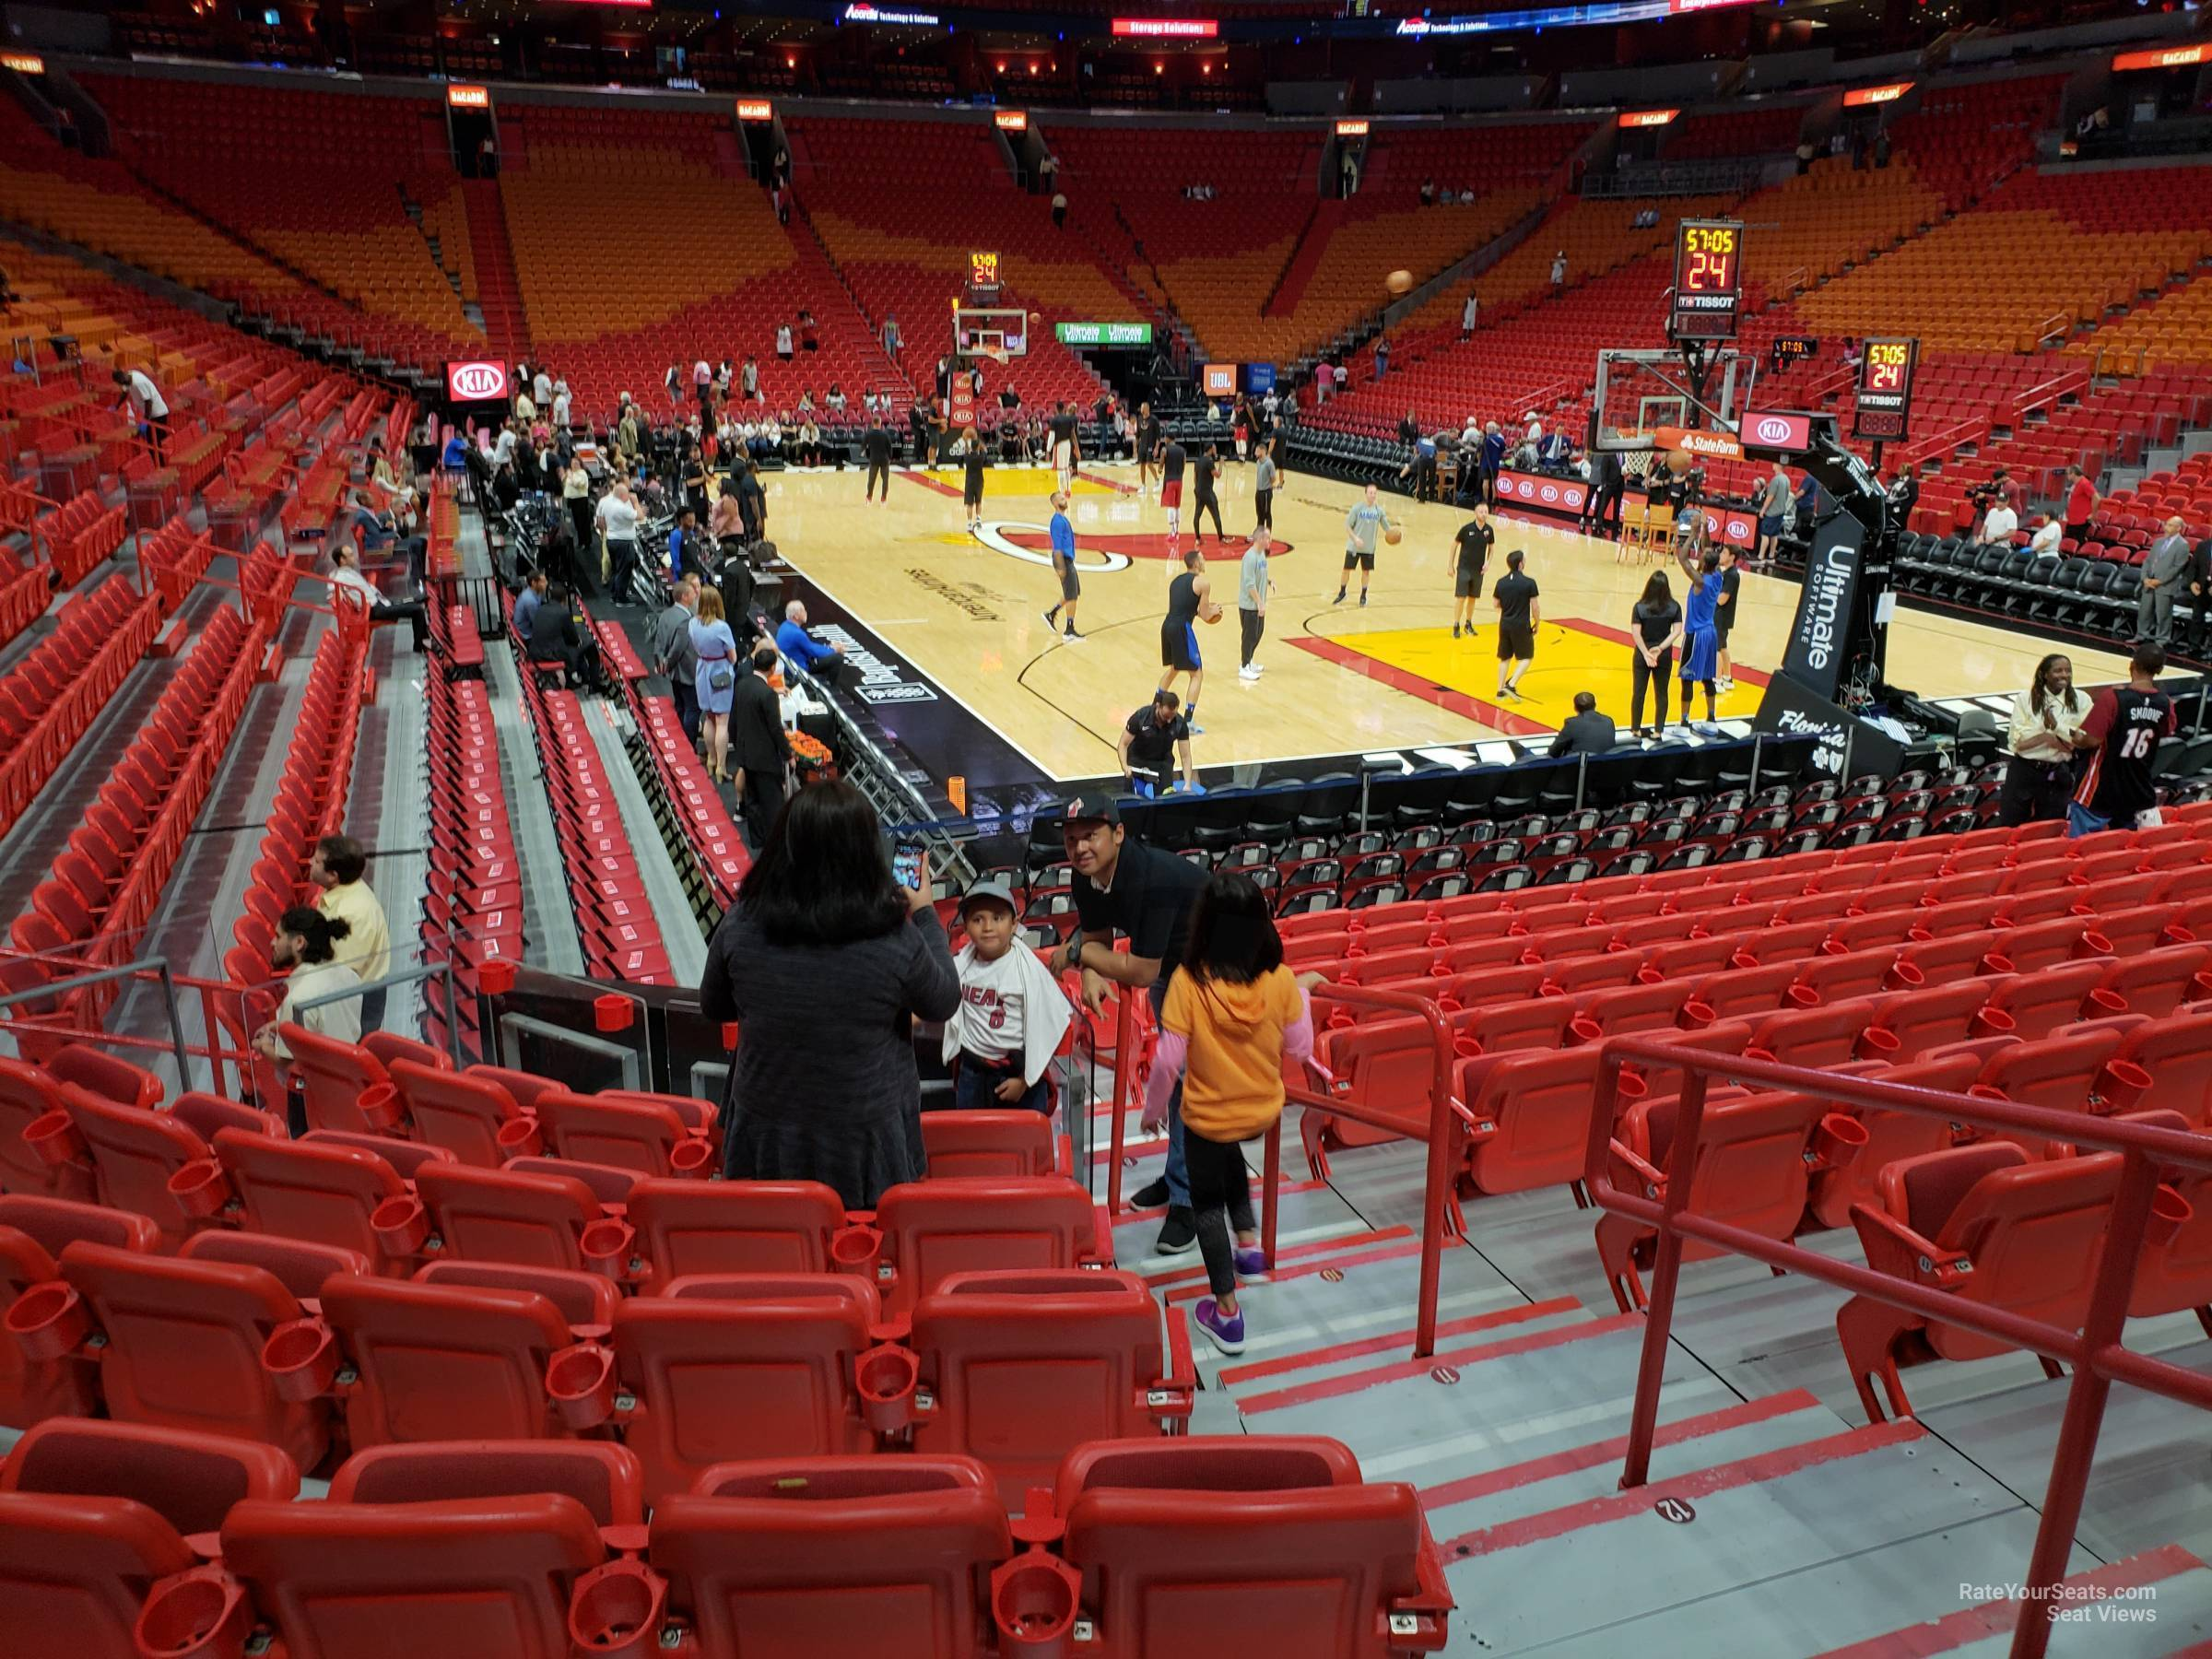 section 102 at americanairlines arena - miami heat